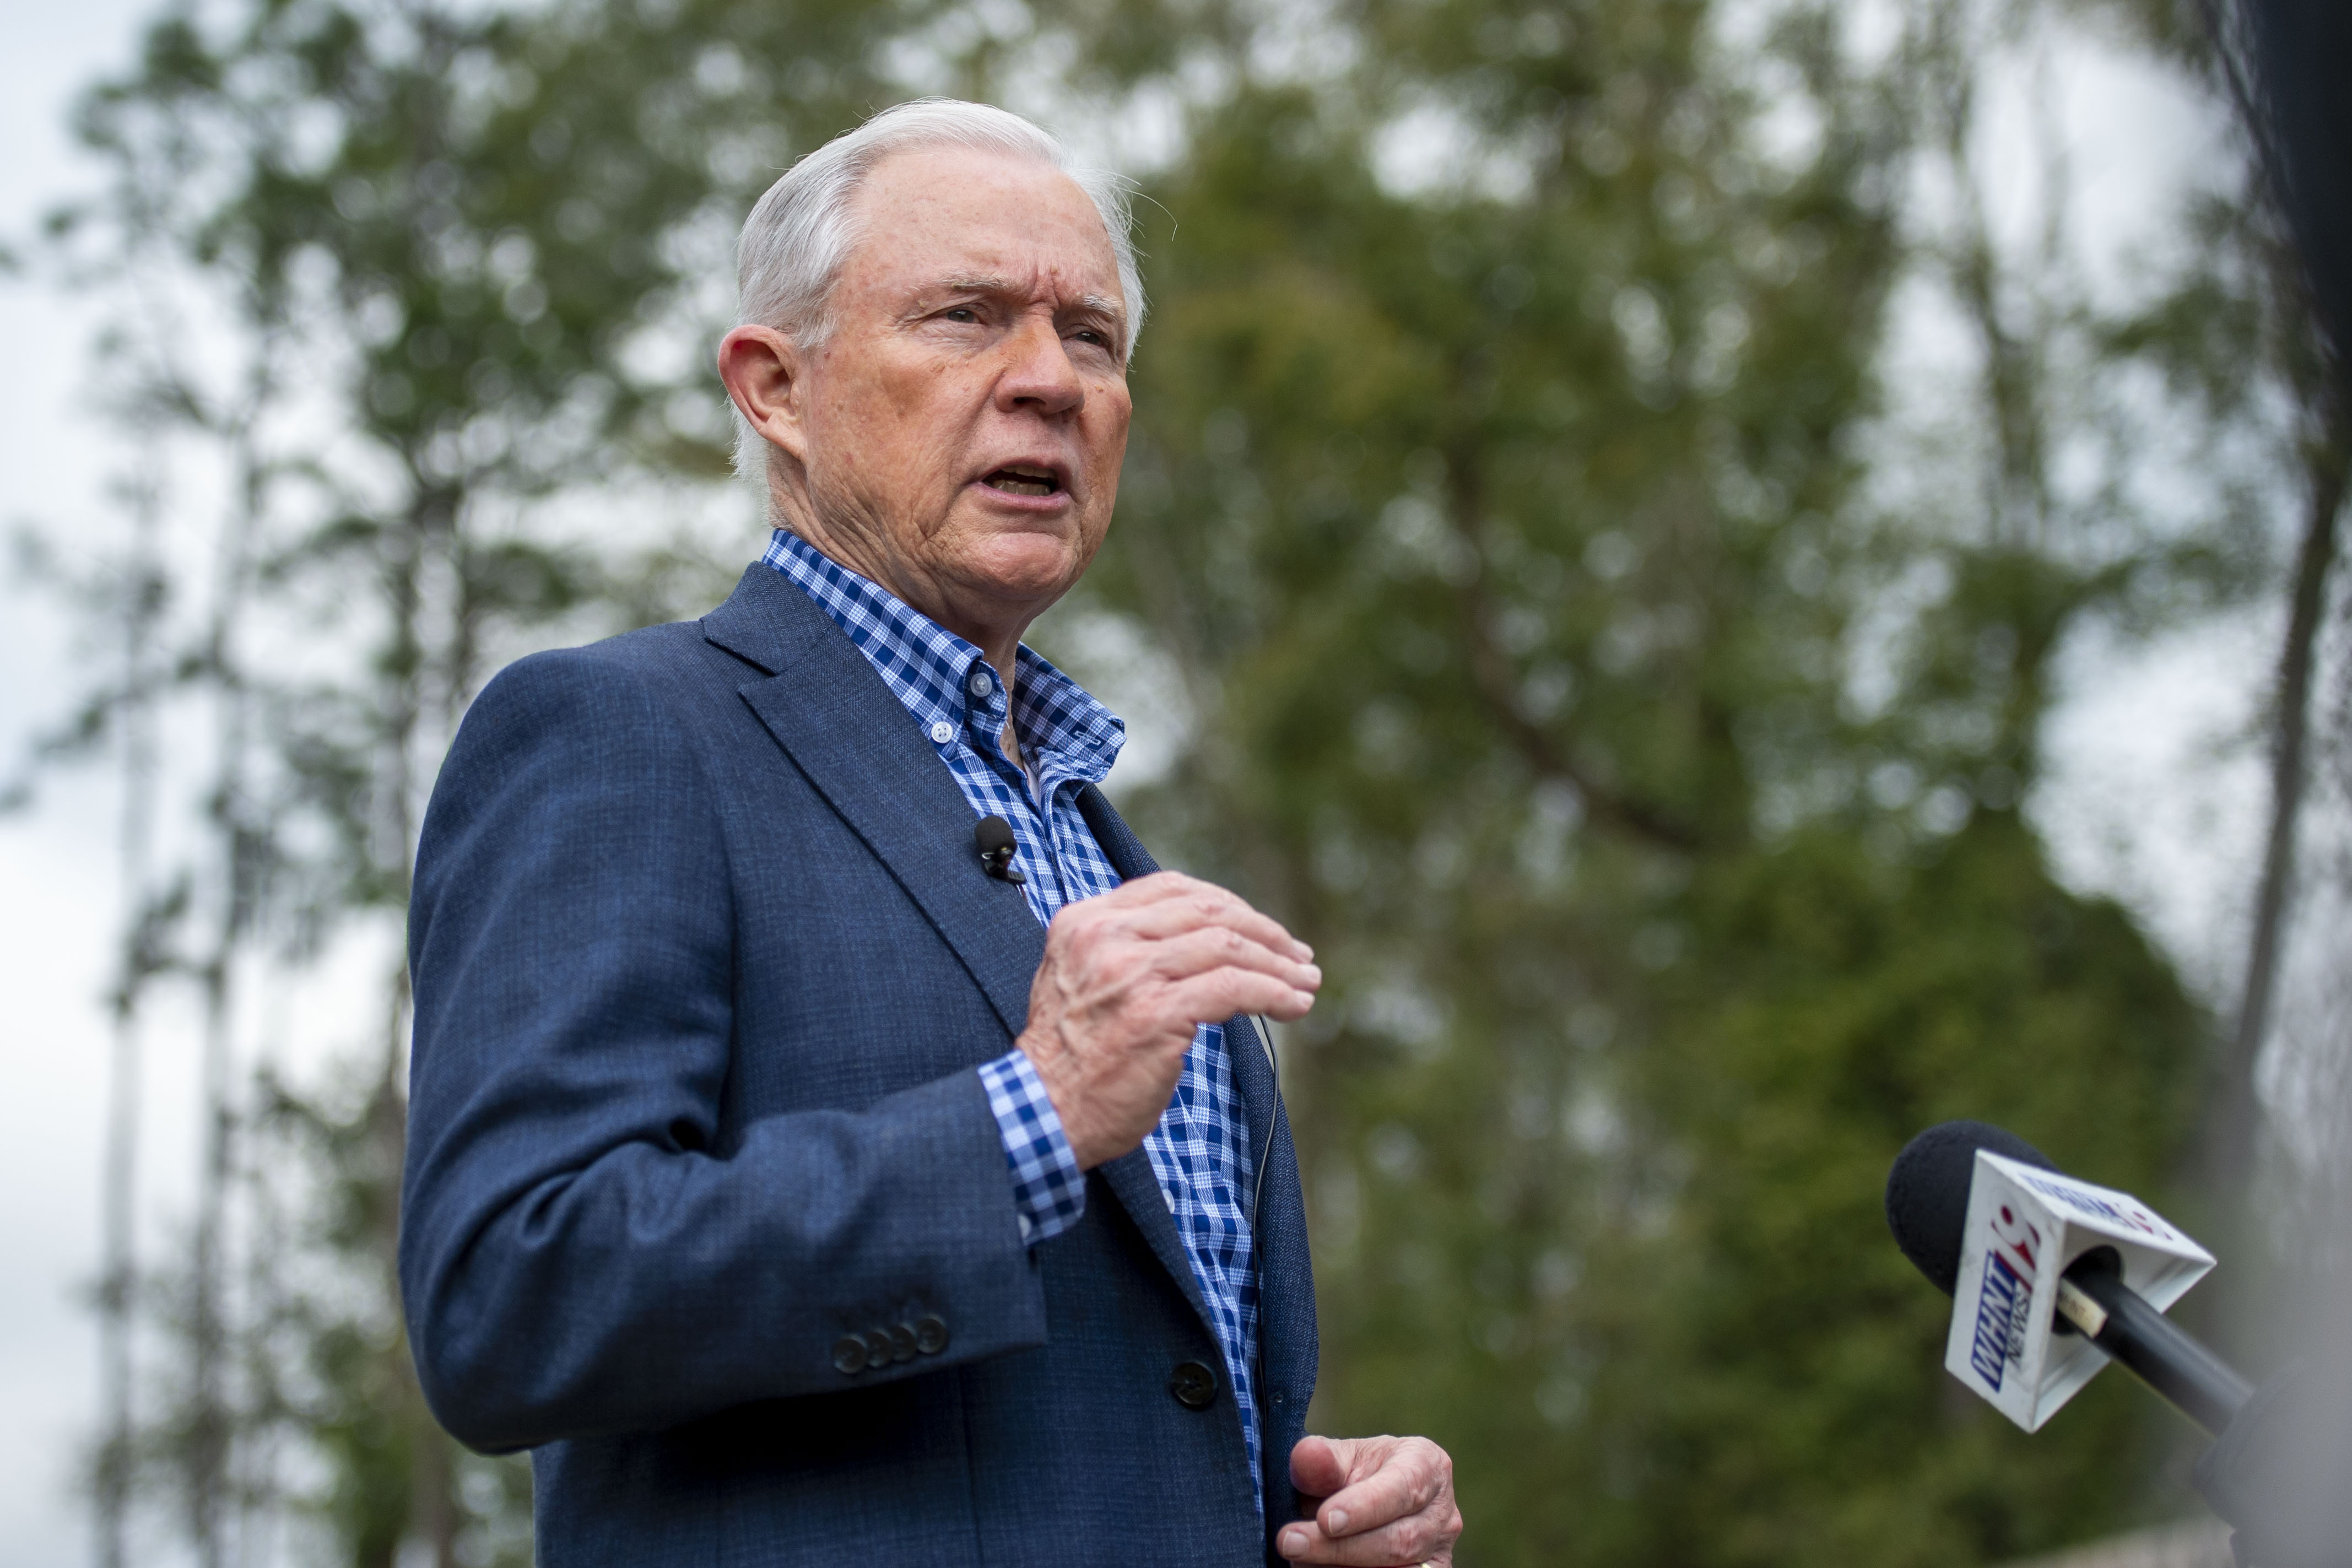 Jeff Sessions speaks with reporters after voting in Alabama's primary election in Mobile, Ala. on Mar. 3, 2020.